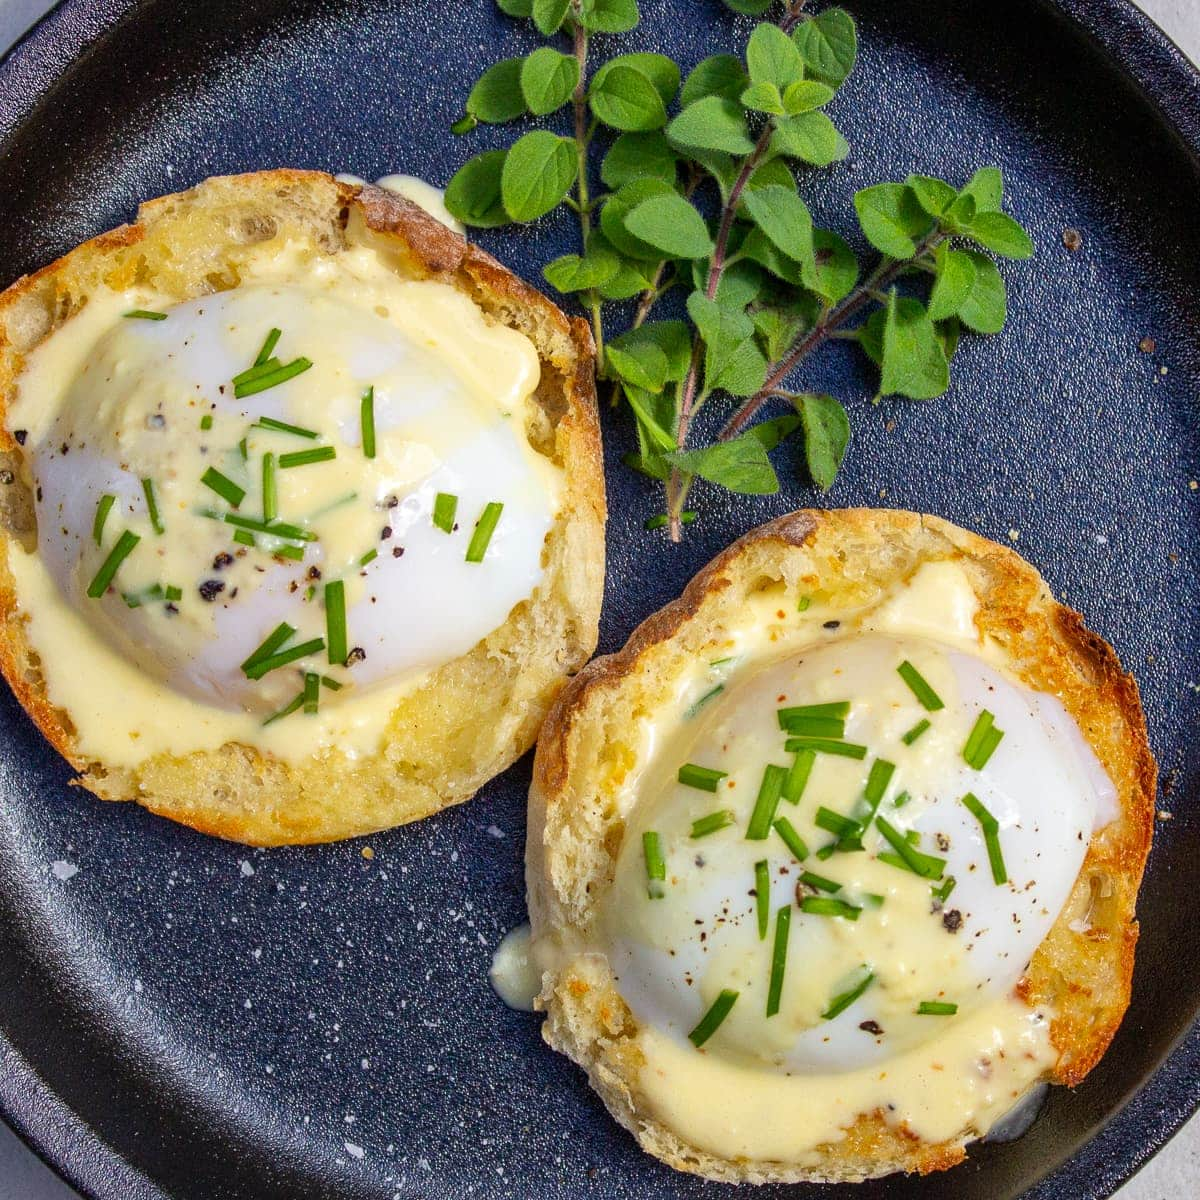 sous vide poached eggs with hollandaise on plate